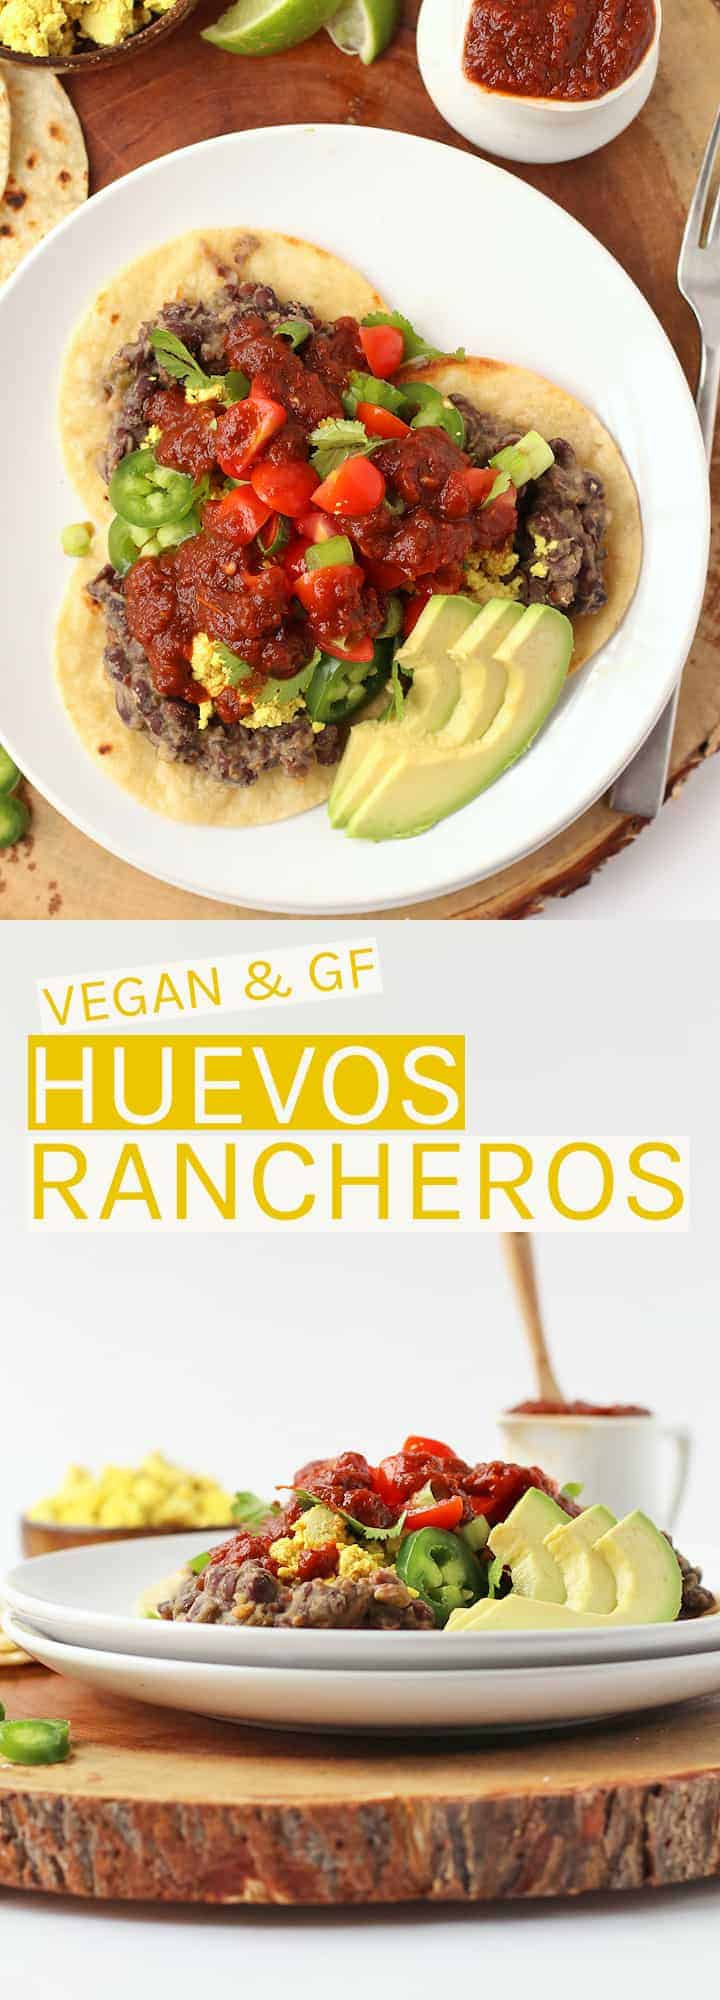 Vegan & gluten-free Huevos Rancheros made with scrambled tofu, refried beans, and ranchero salsa all on top crispy corn tortillas.